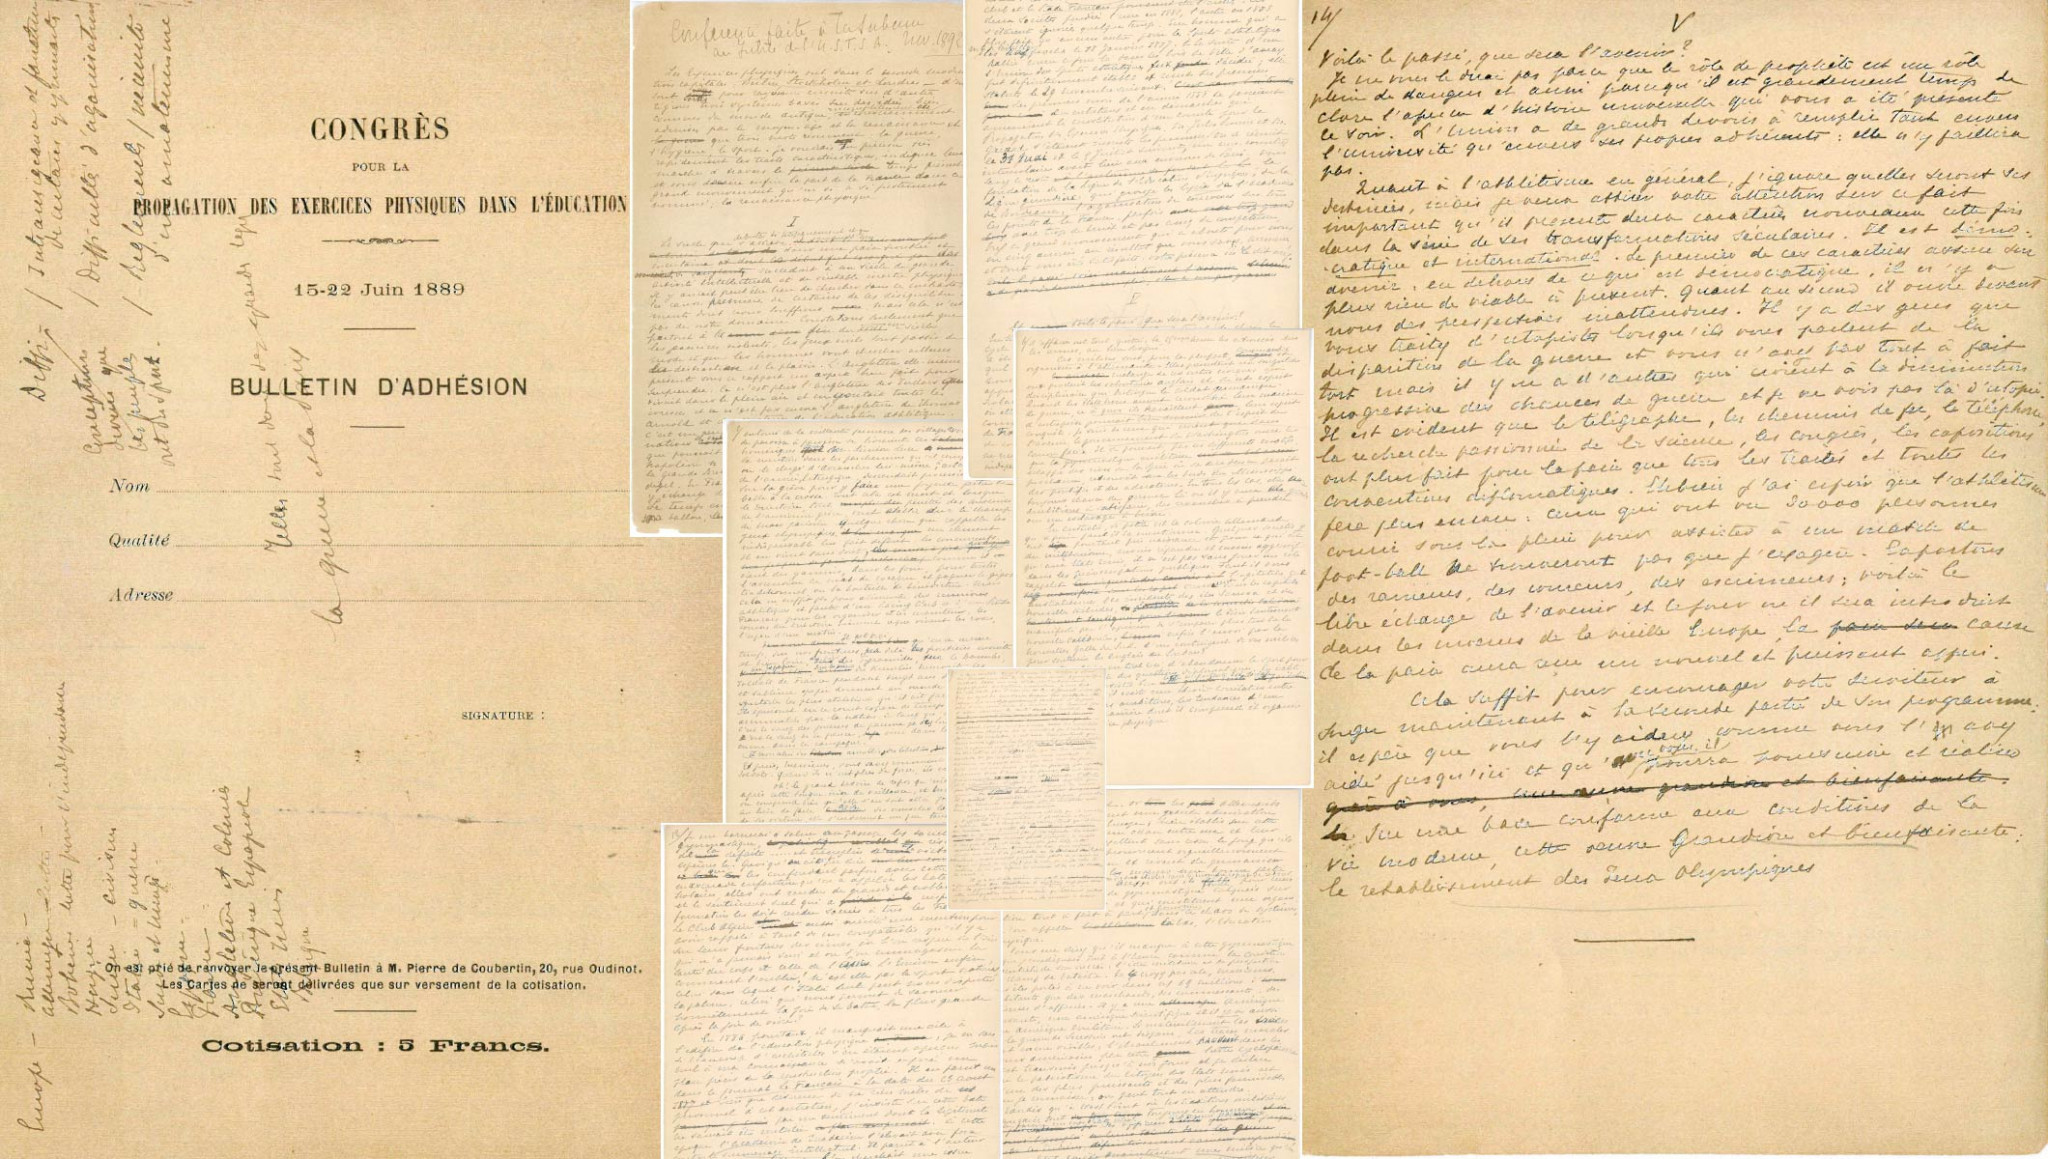 Baron Pierre de Coubertin's famous manuscript has been donated to the Olympic Museum ©IOC